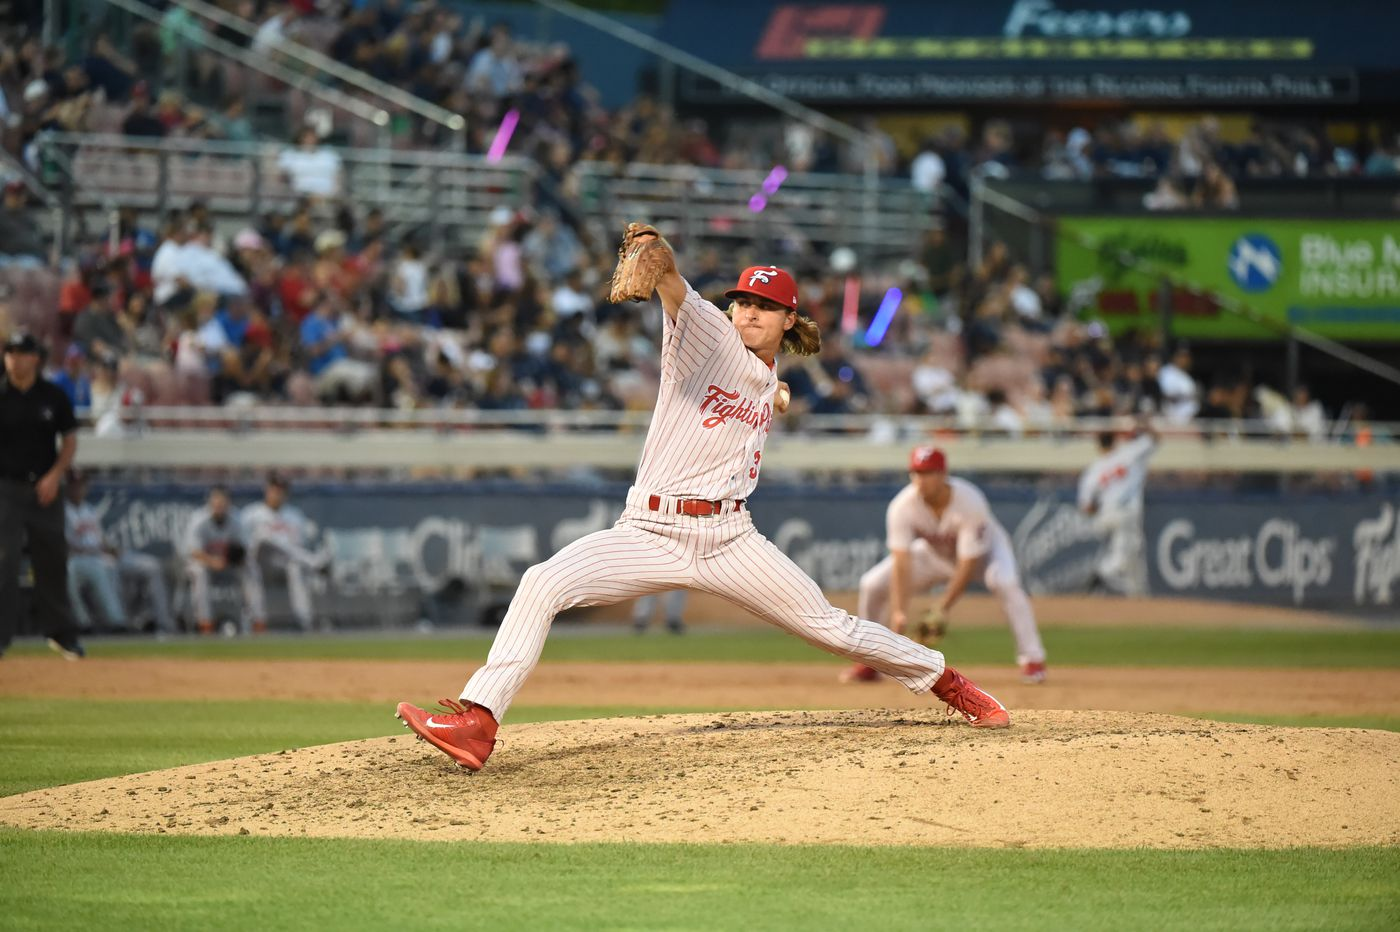 In double A, Phillies pitching prospect Kyle Dohy finds a challenge at last